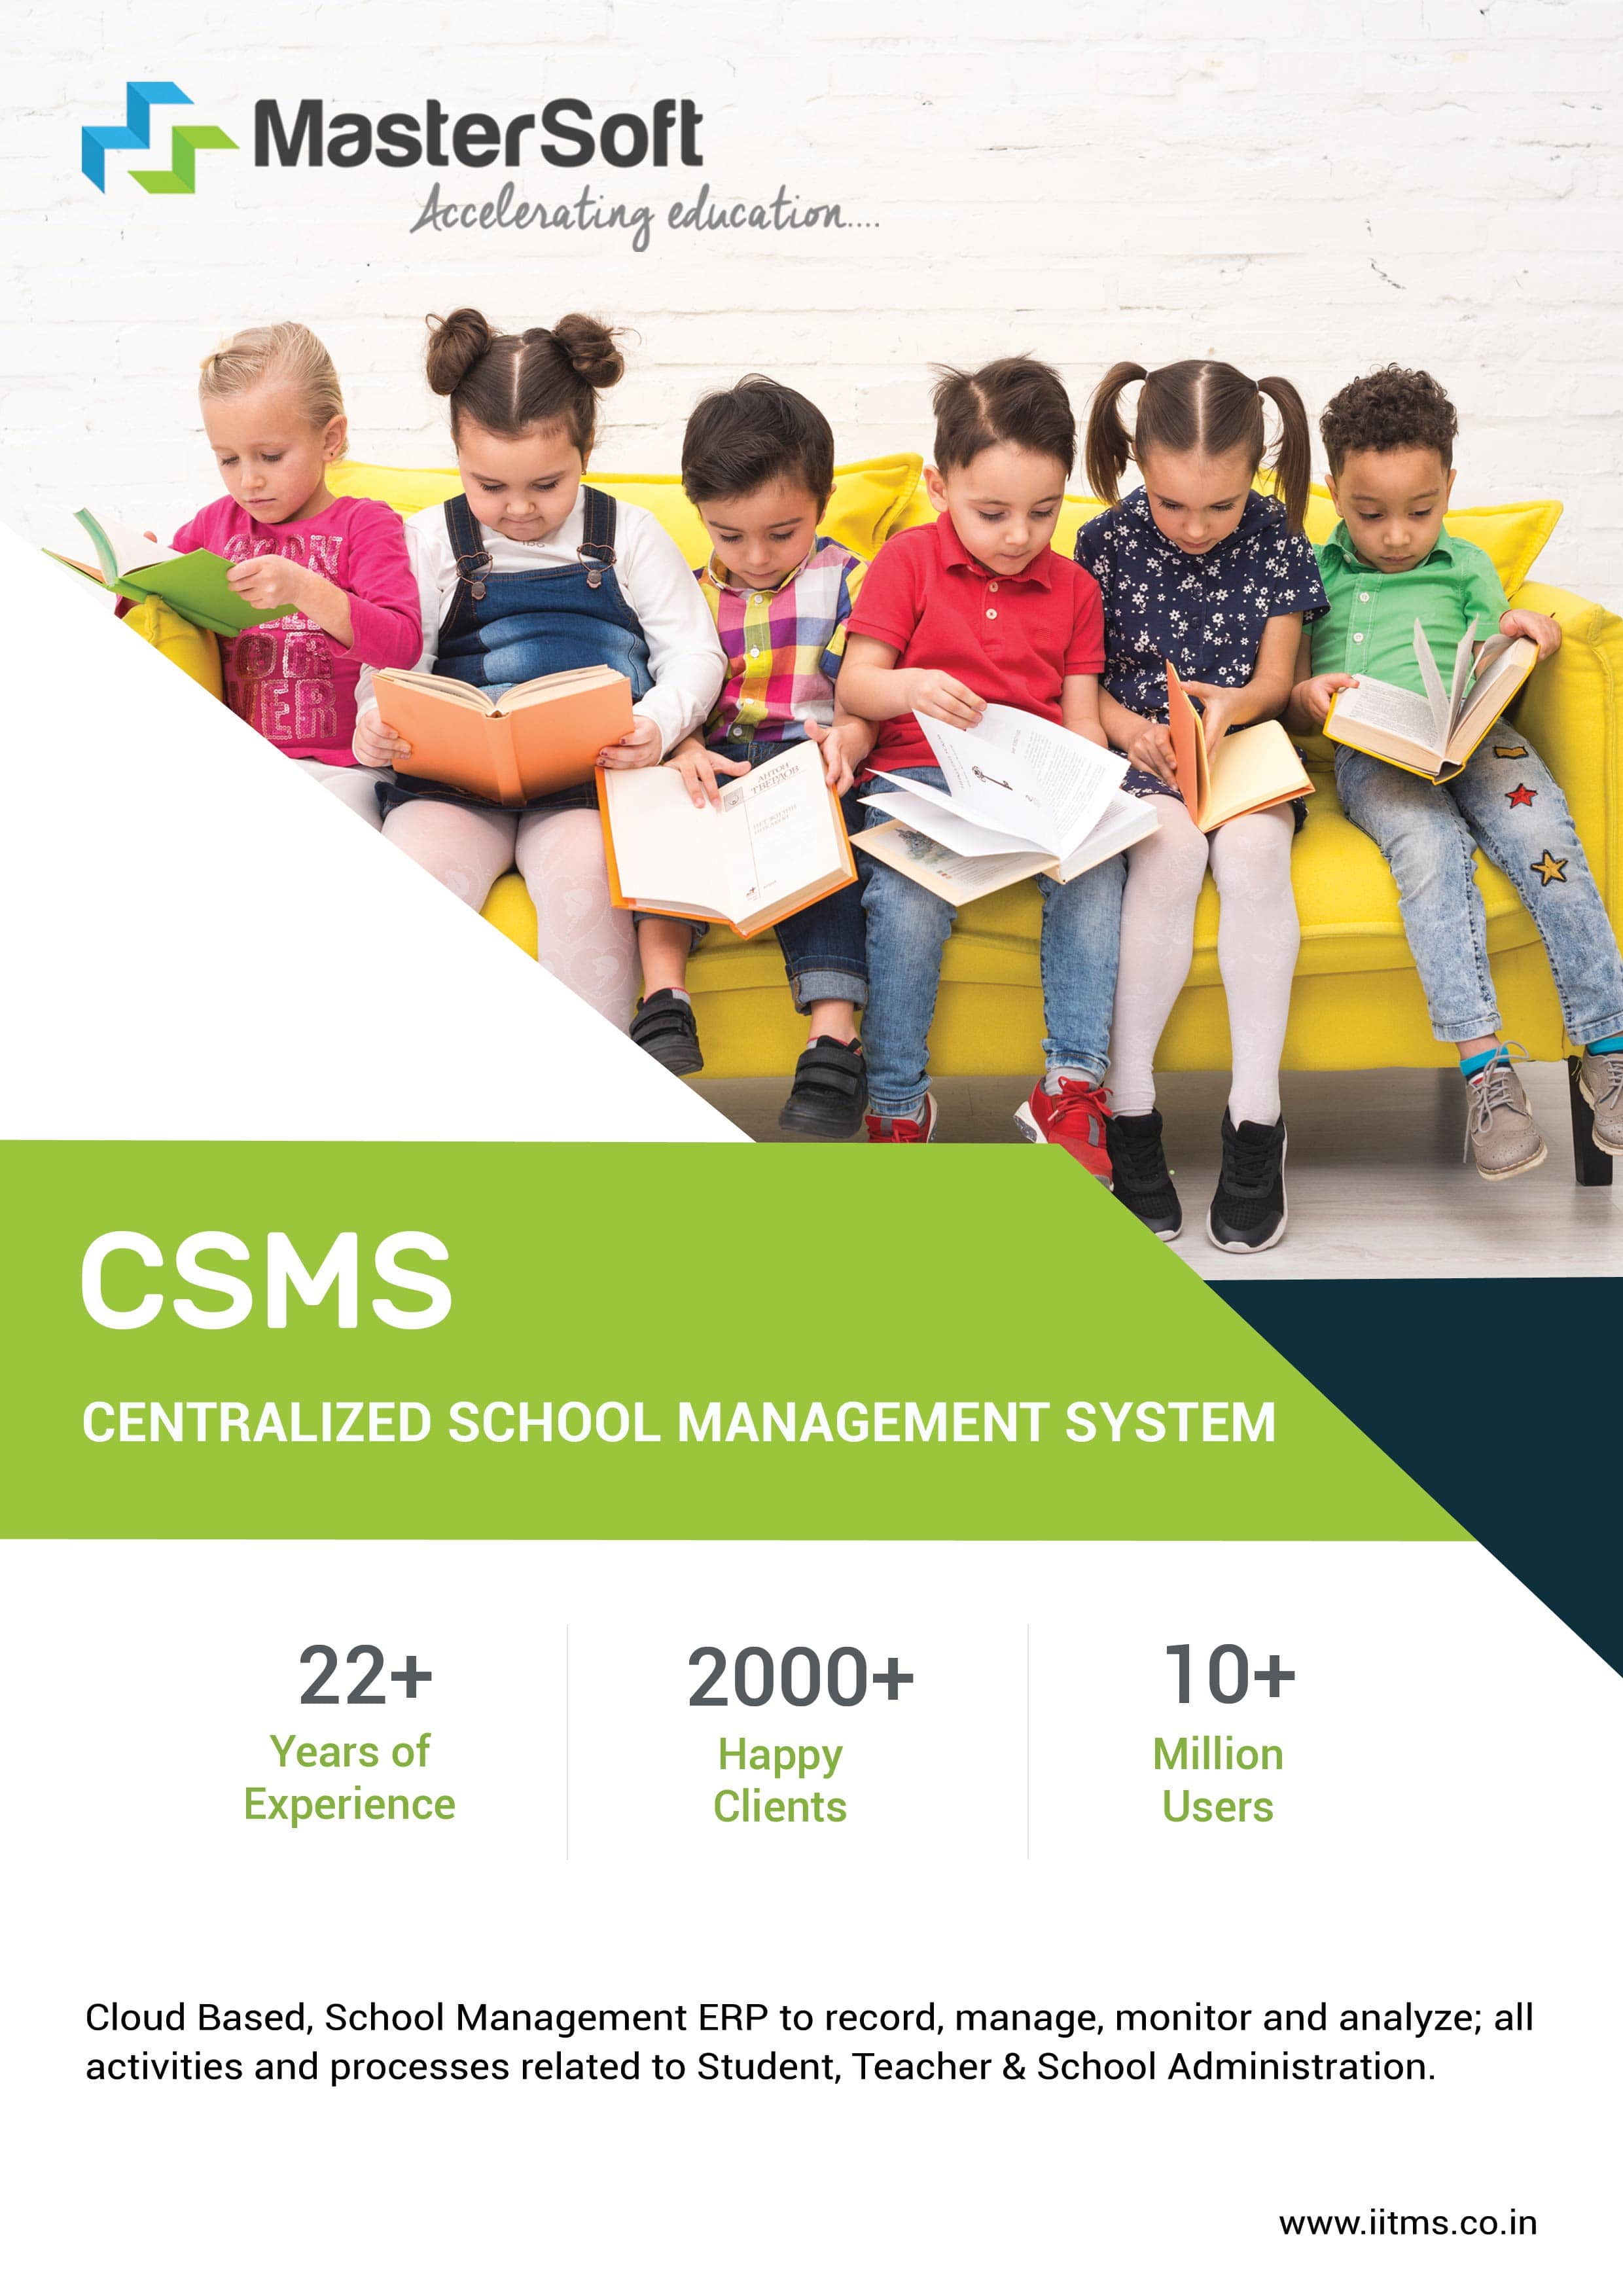 Centralized School Management System